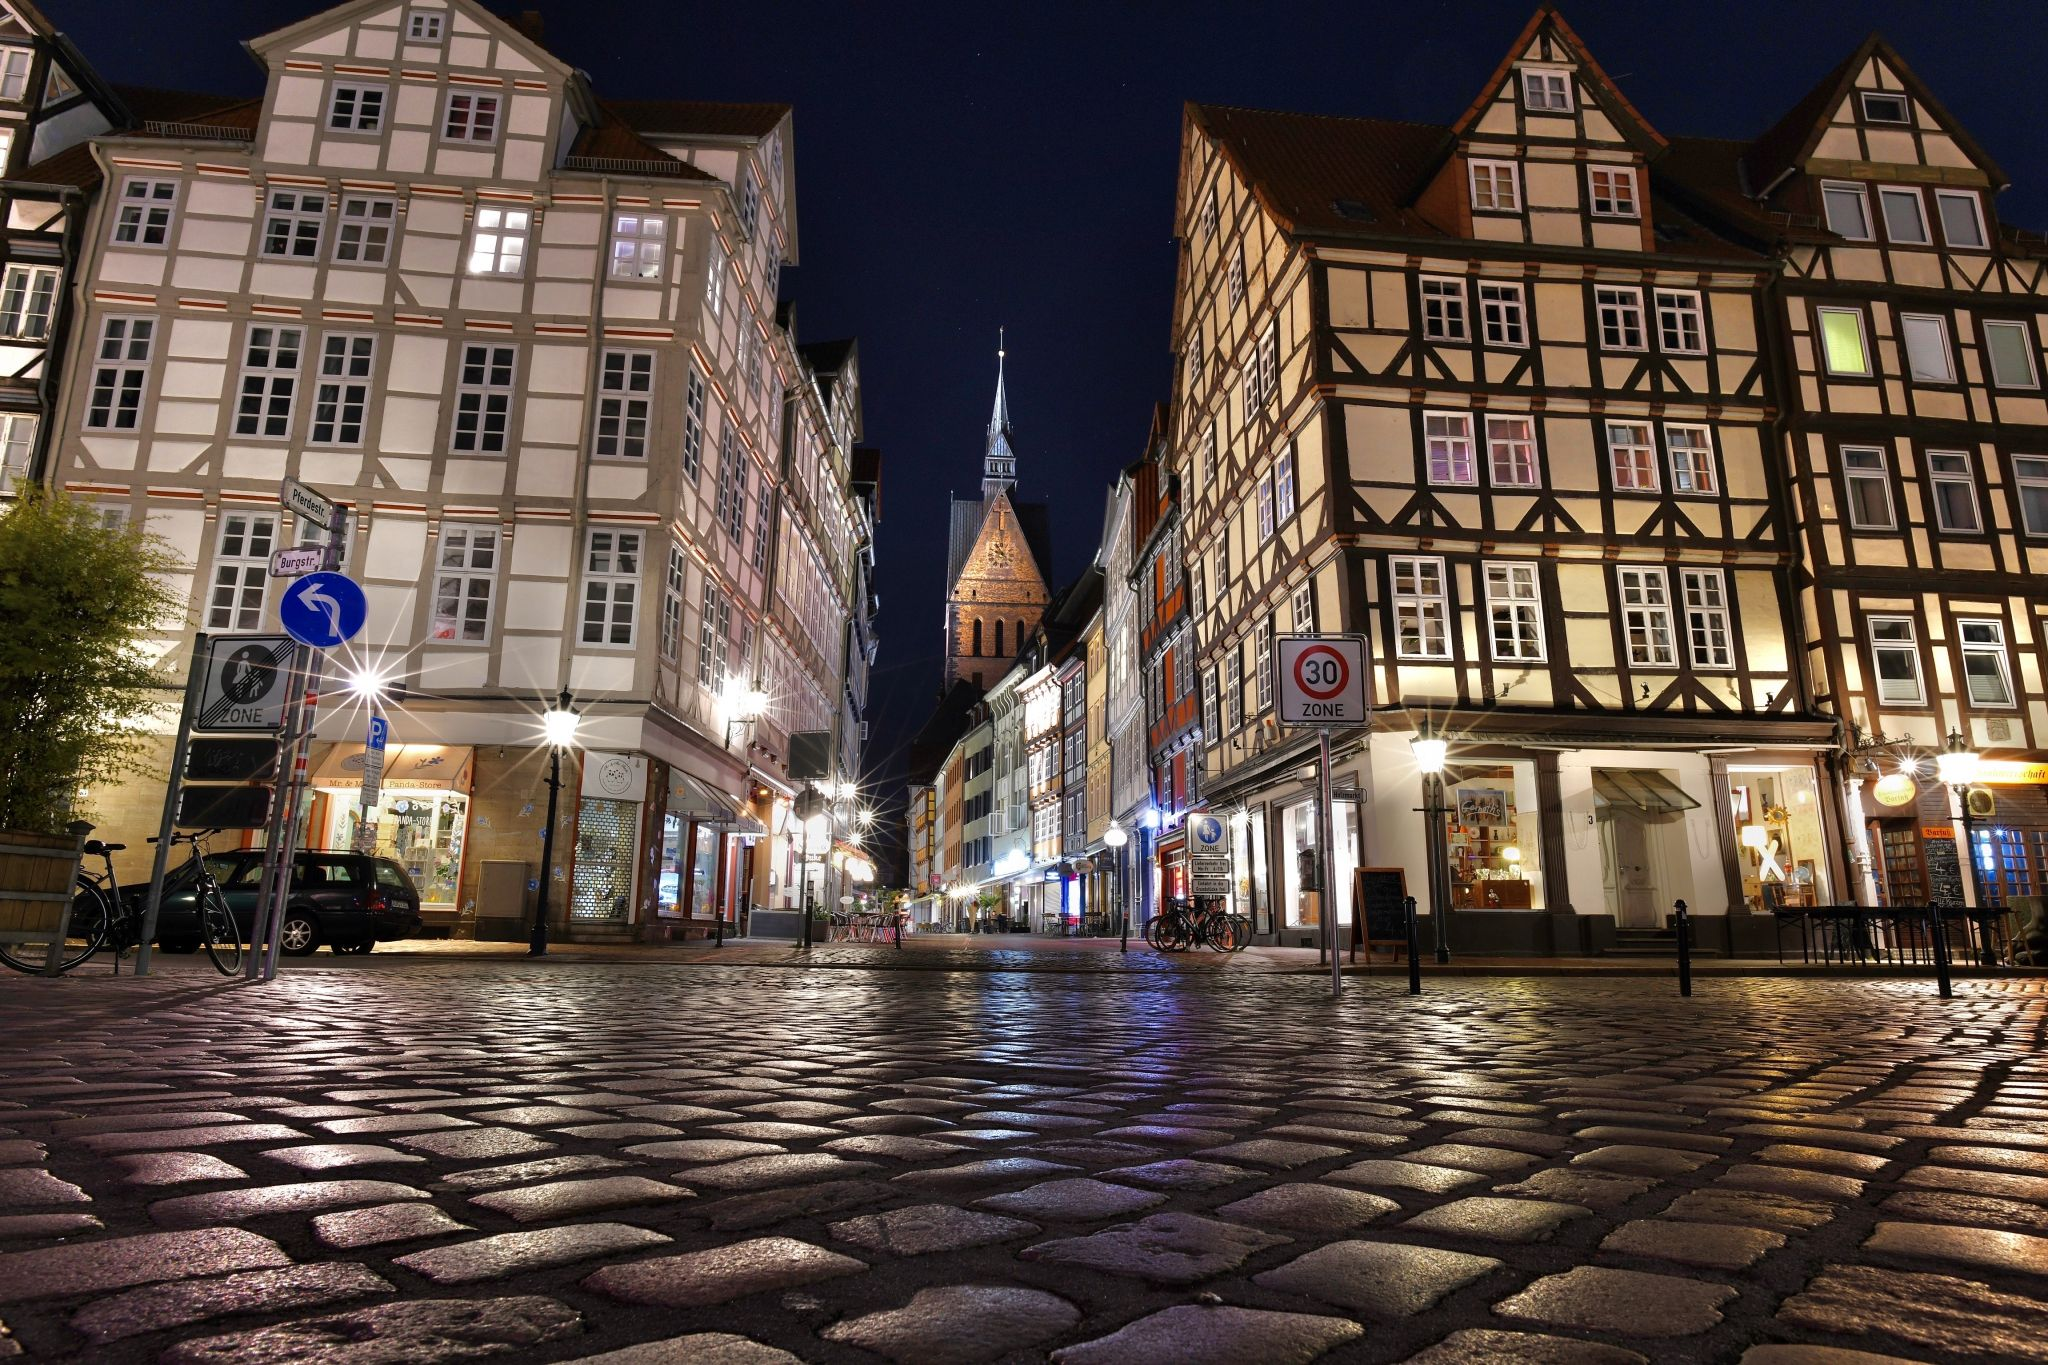 Hannover Altstadt / Old Town, Germany